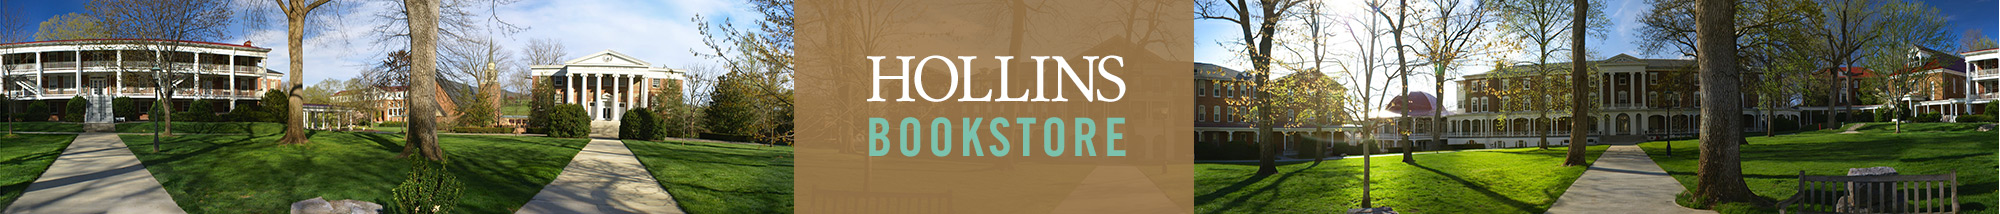 Hollins Bookstore